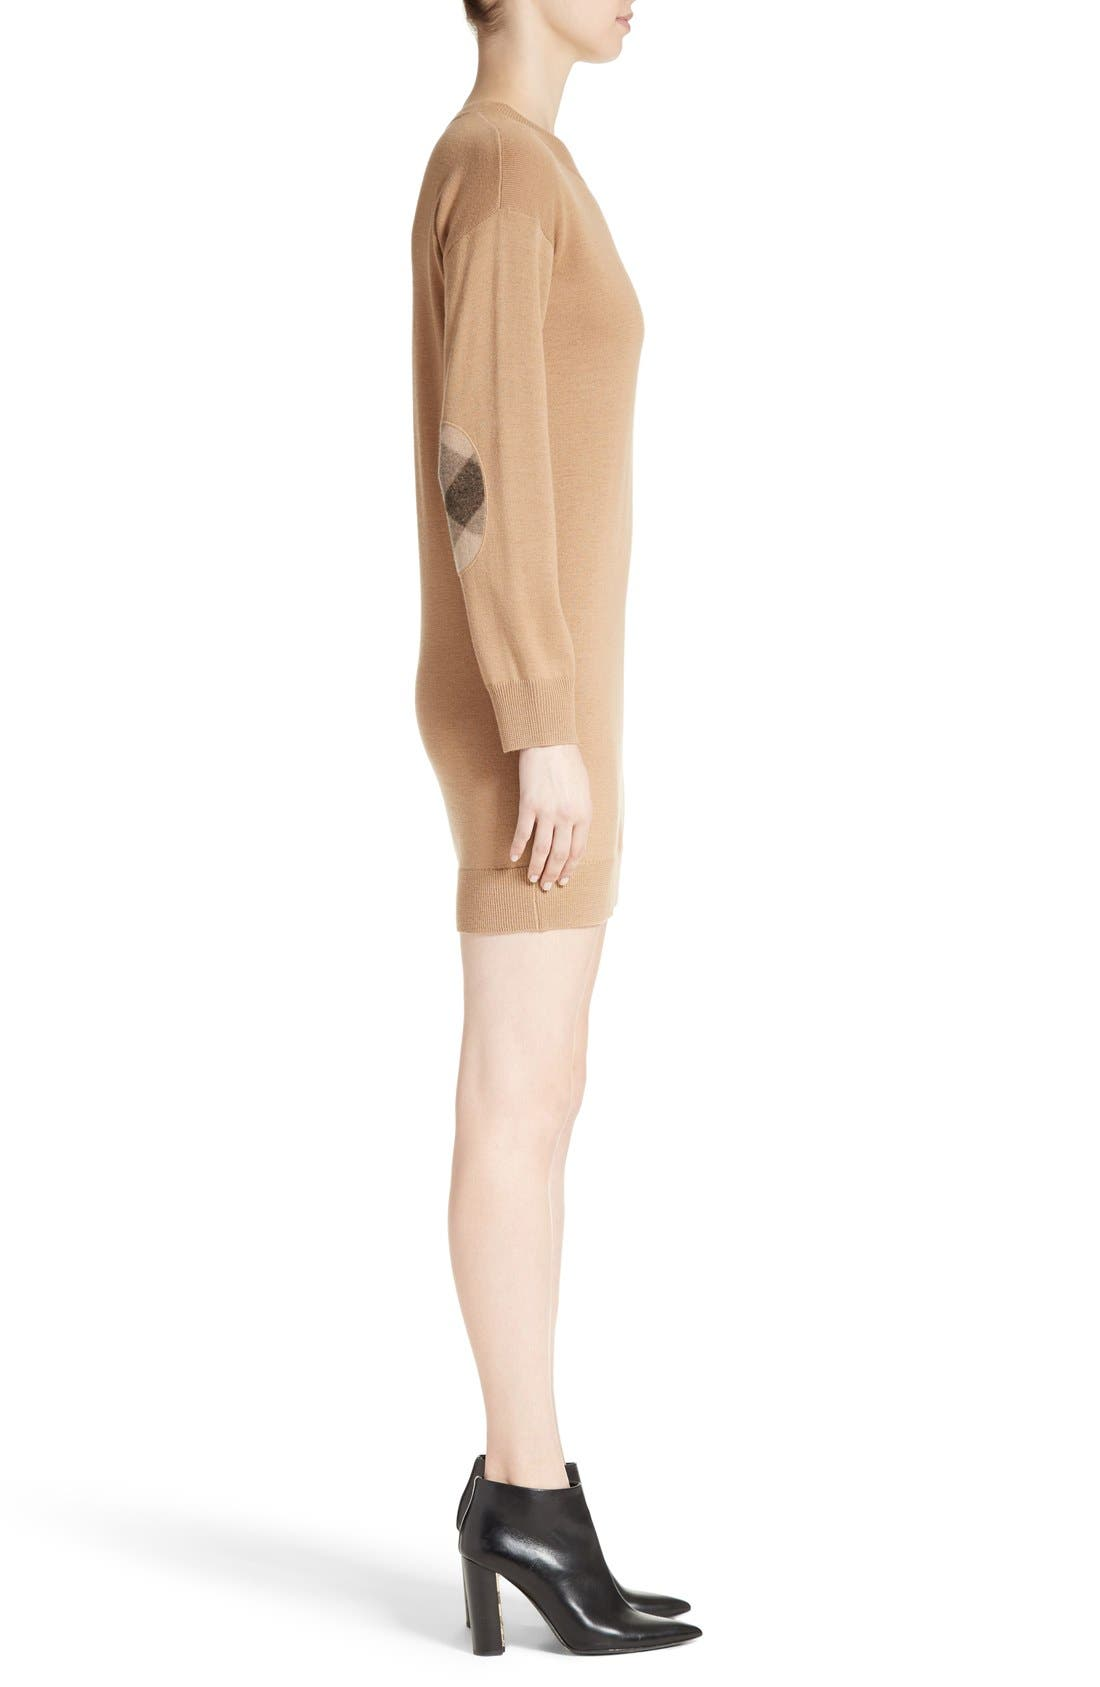 BURBERRY, Alewater Elbow Patch Merino Wool Dress, Alternate thumbnail 12, color, CAMEL